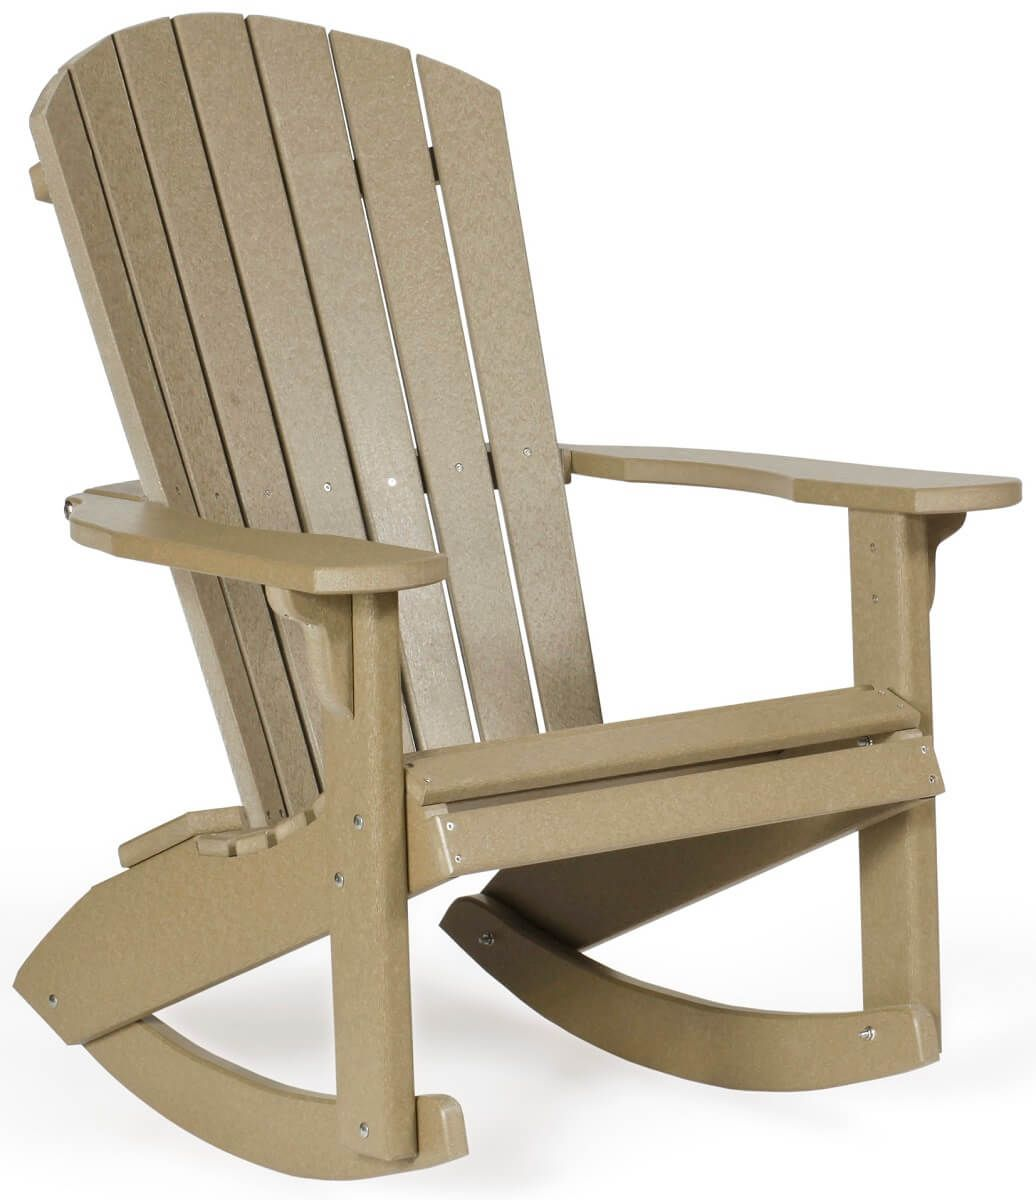 Bahia Adirondack Rocker in Weatherwood